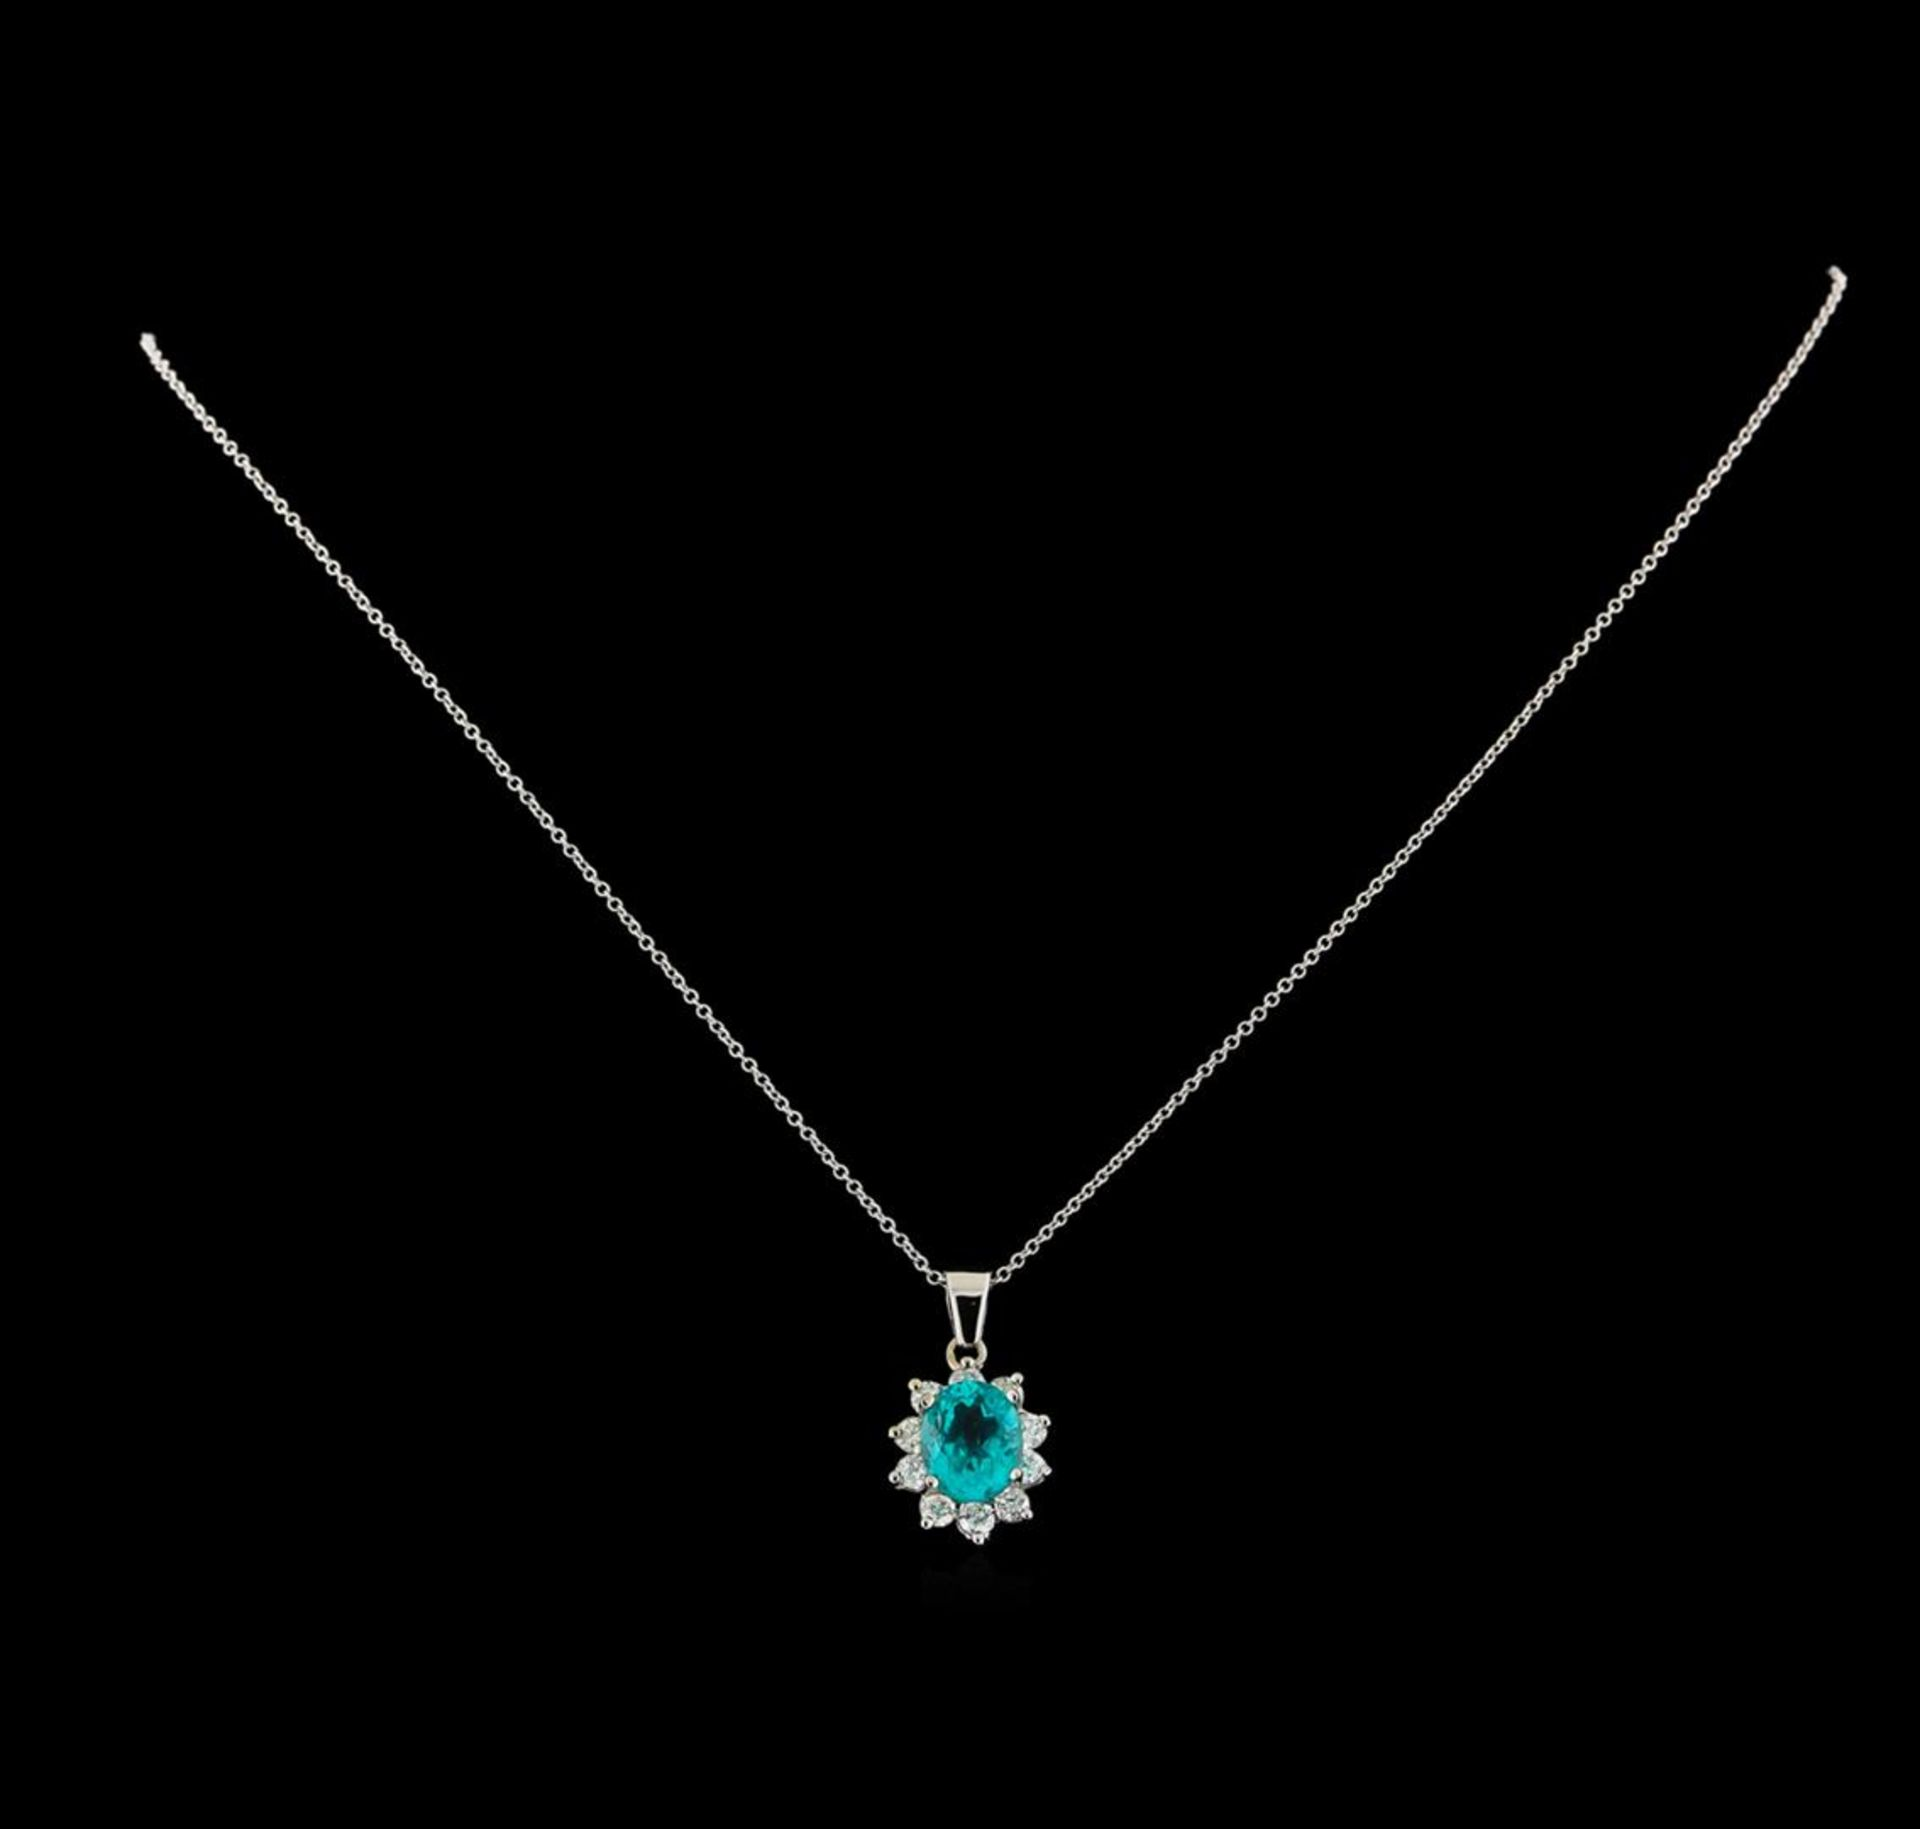 3.04 ctw Apatite and Diamond Pendant With Chain - 14KT White Gold - Image 2 of 3